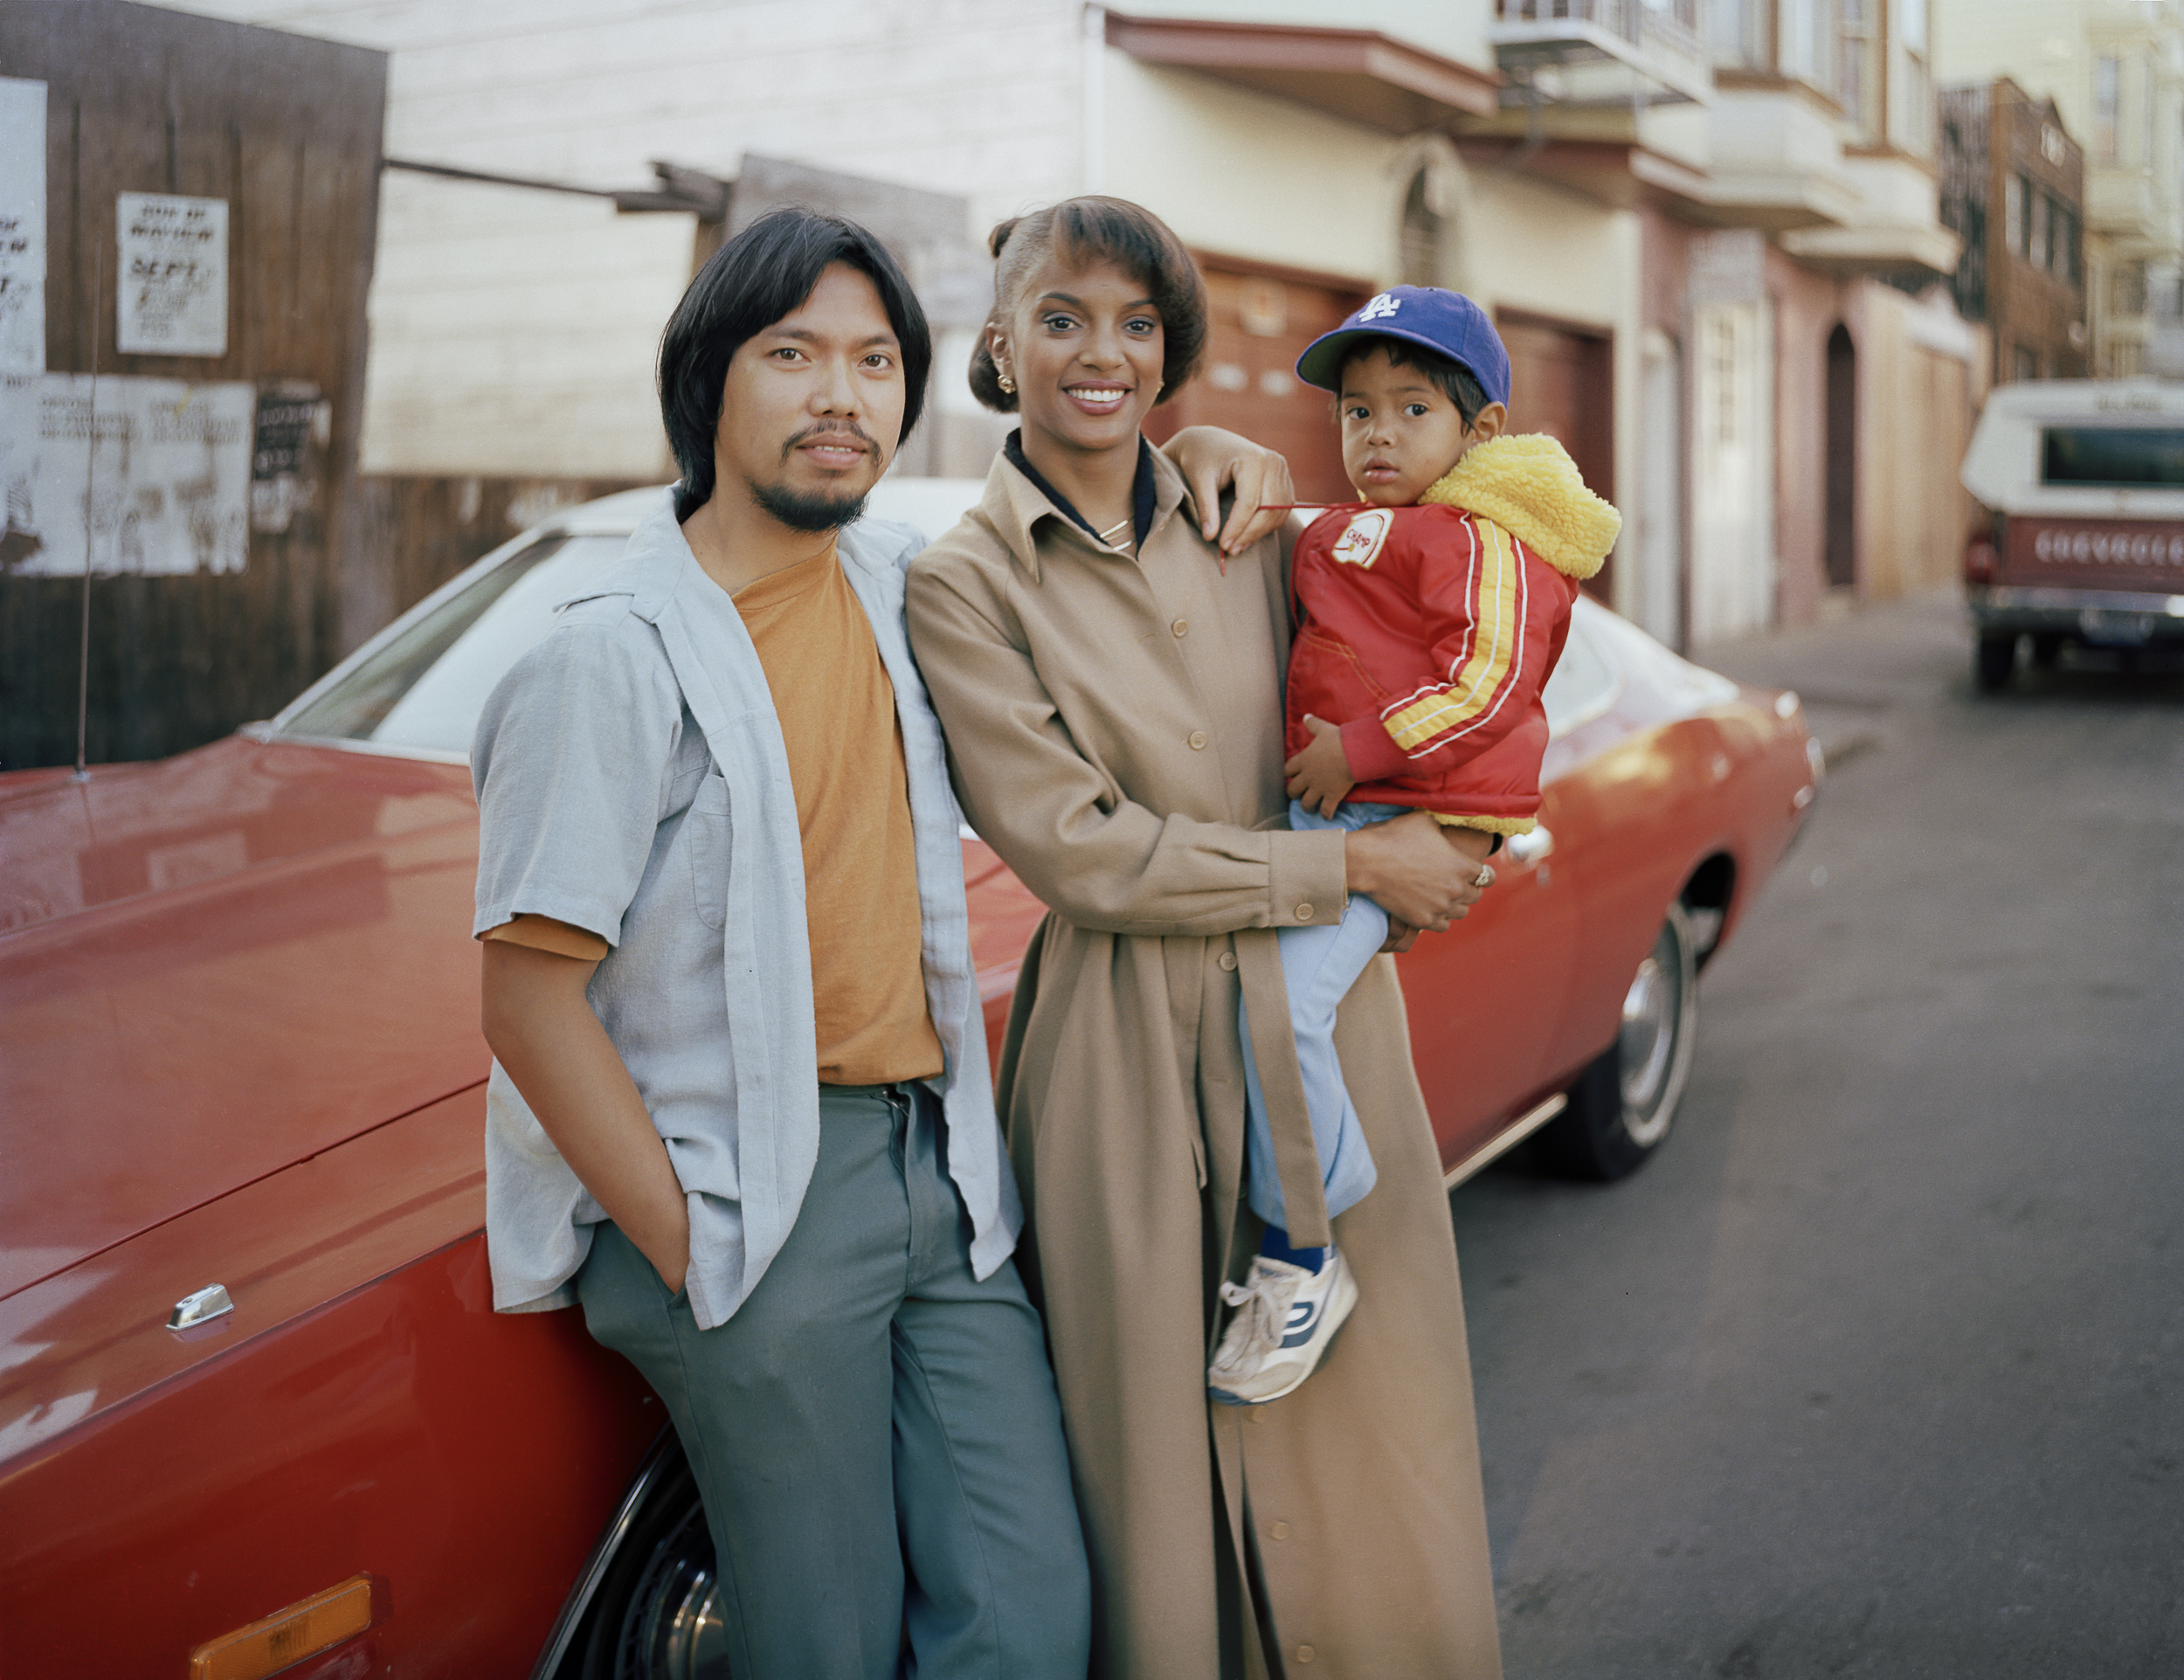 Langton Street residents Lalett and Vanessa Fernandez with their son, 1980 Archival Pigment Print, 2016 16 x 20 inches, edition of 5 20 x 24 inches, edition of 2 30 x 40 inches, edition of 2